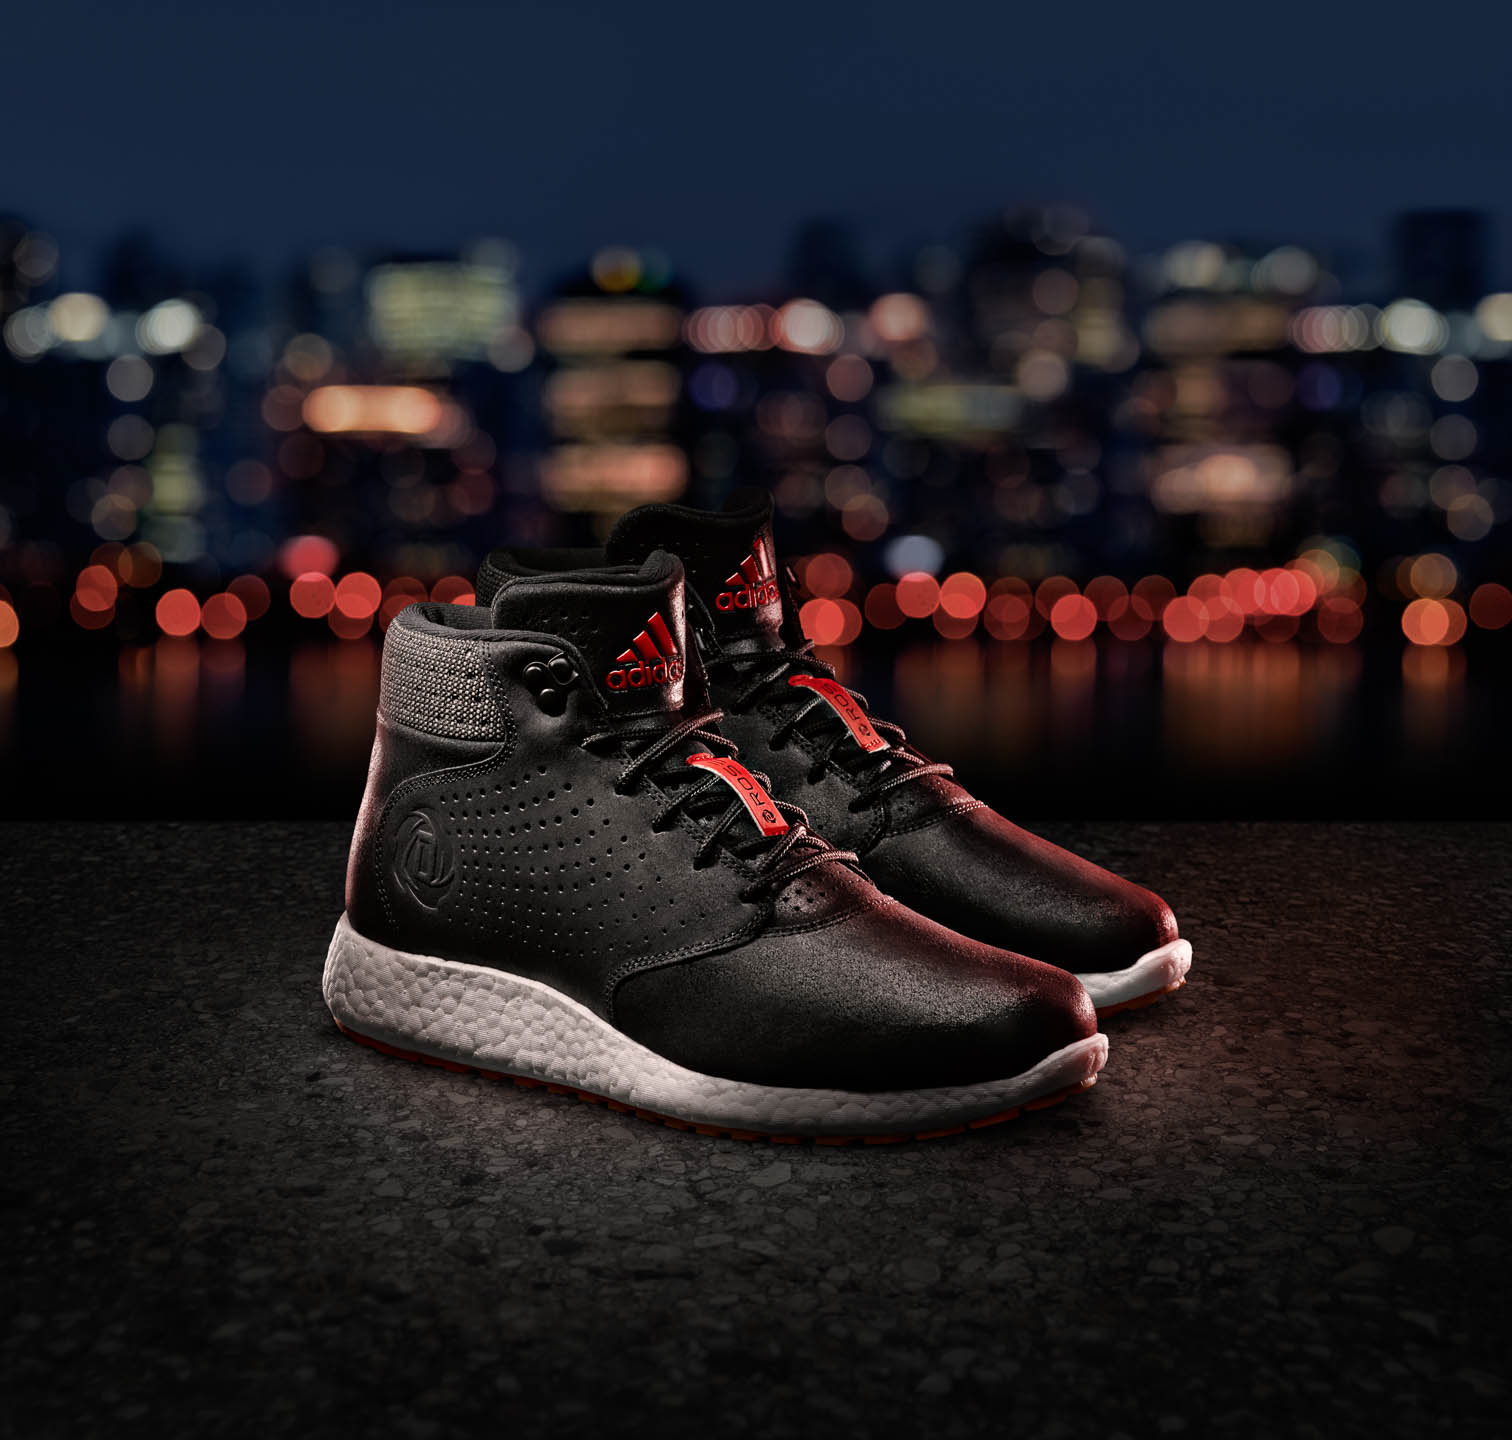 Adidas Lakeshore basketball footwear